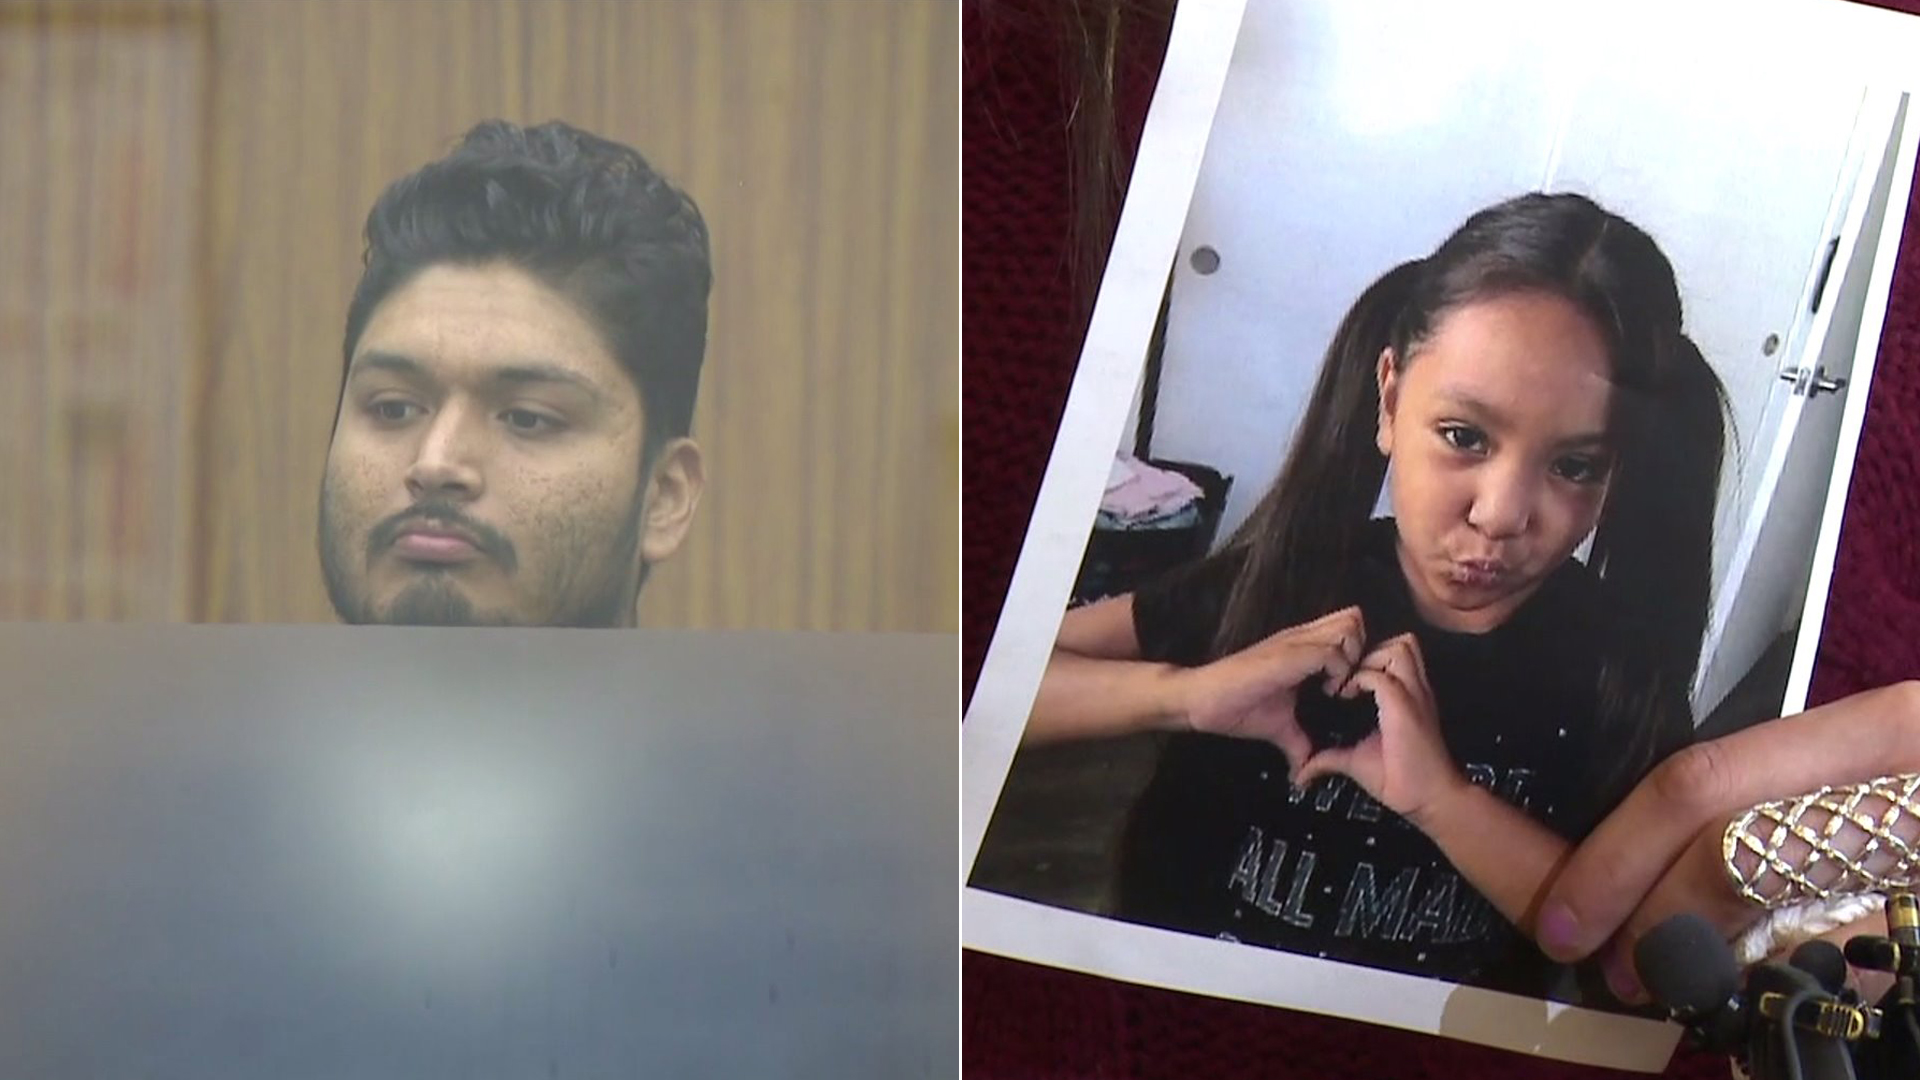 Pedro Araujo, left, appears in a San Diego County courtroom on Aug. 6, 2019. At right, a relative holds a picture of his slain daughter Mariah Araujo at a press conference on July 31, 2019. (Credit: KTLA)